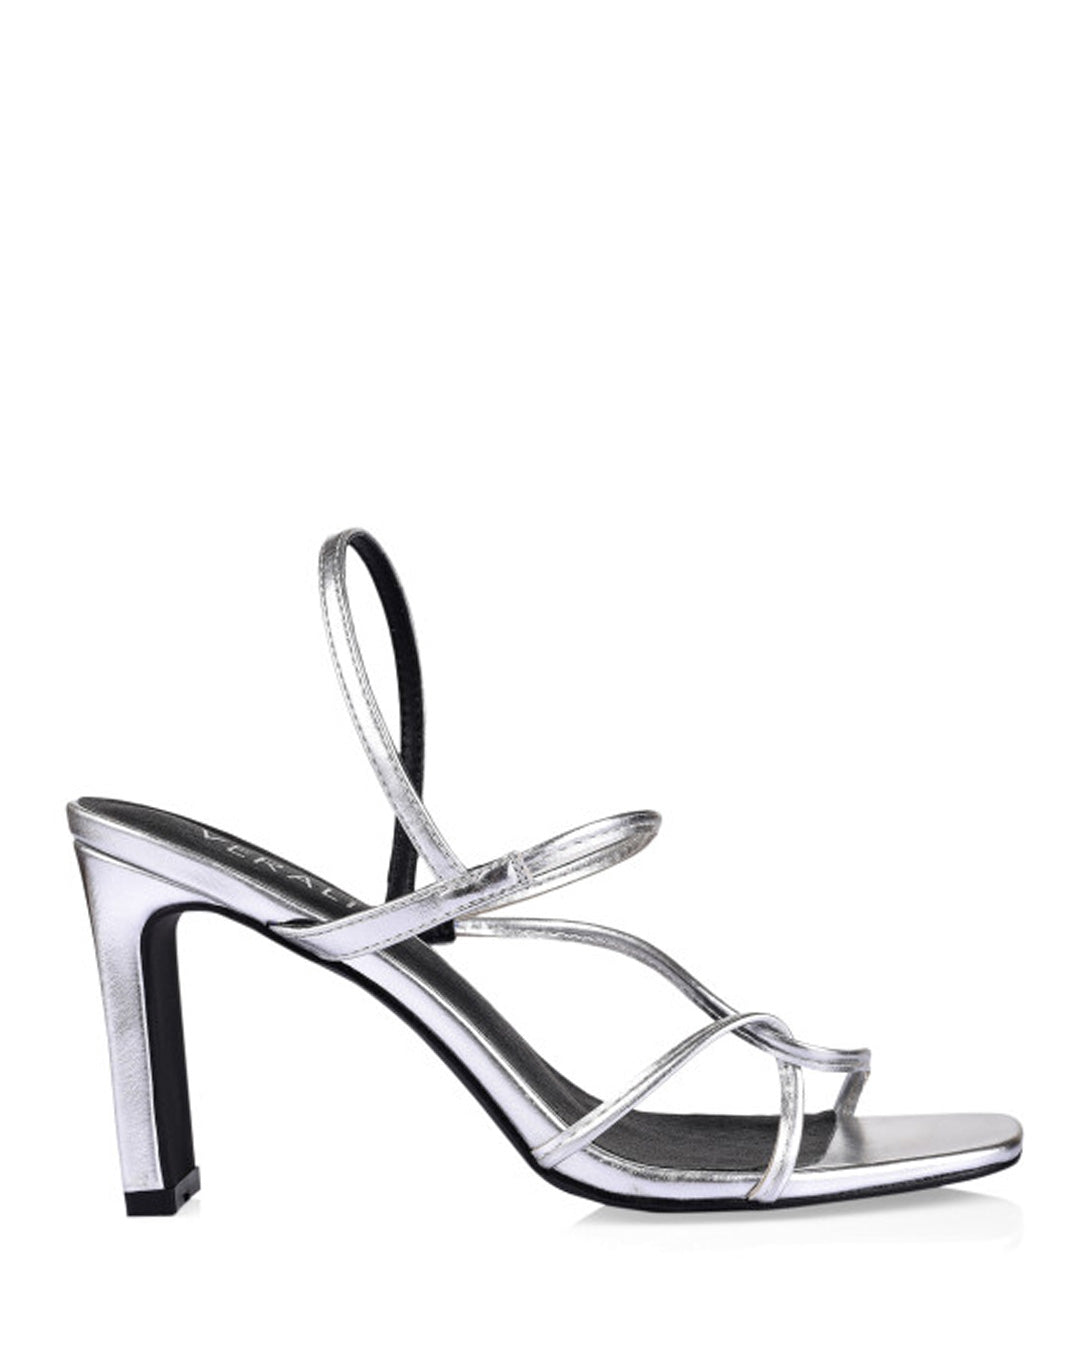 Kingston Heels - Silver